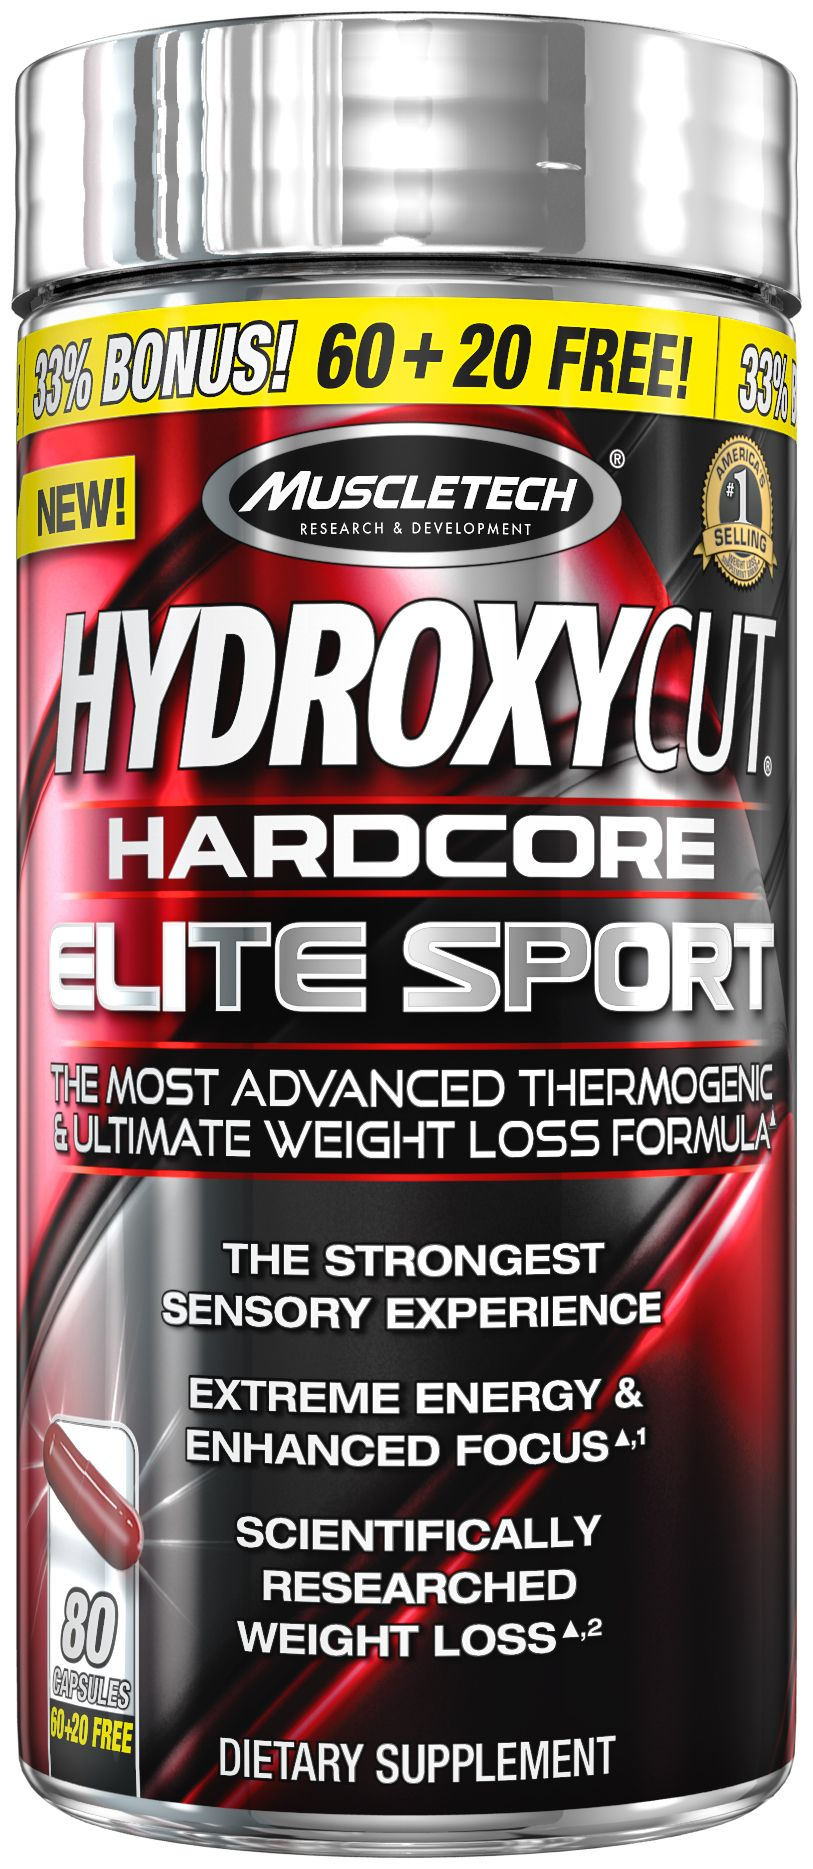 Hydroxycut Hardcore Elite Series